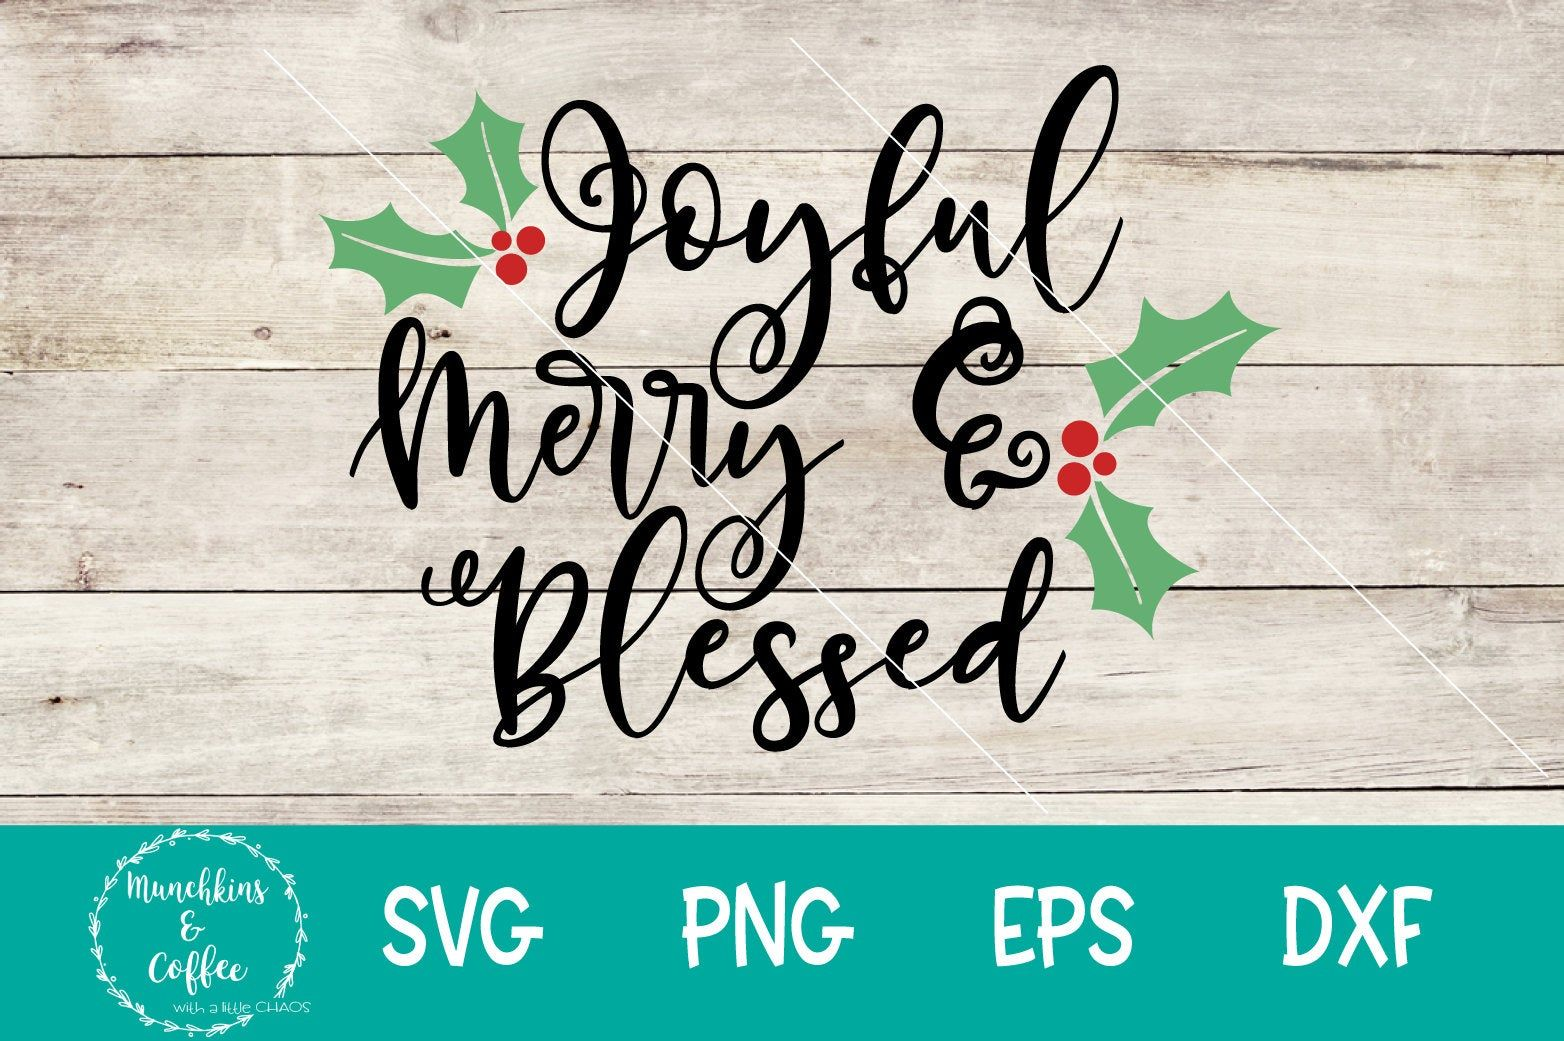 Joyful Merry & Blessed SVG Christmas in heaven, Svg, Merry